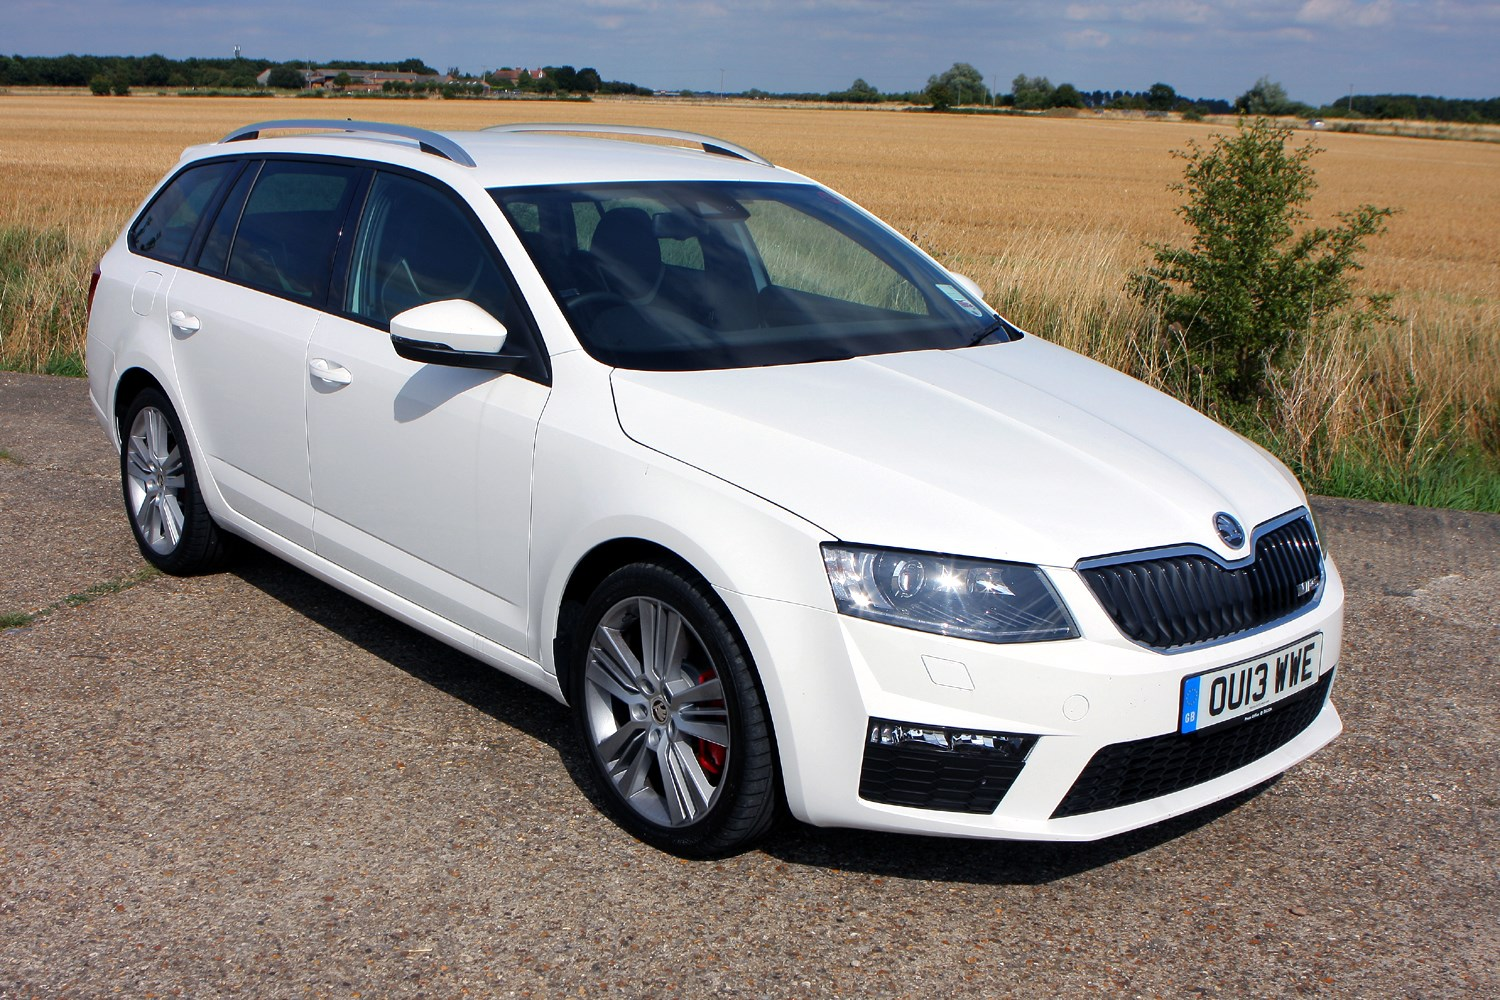 skoda octavia vrs 2013 photos parkers. Black Bedroom Furniture Sets. Home Design Ideas